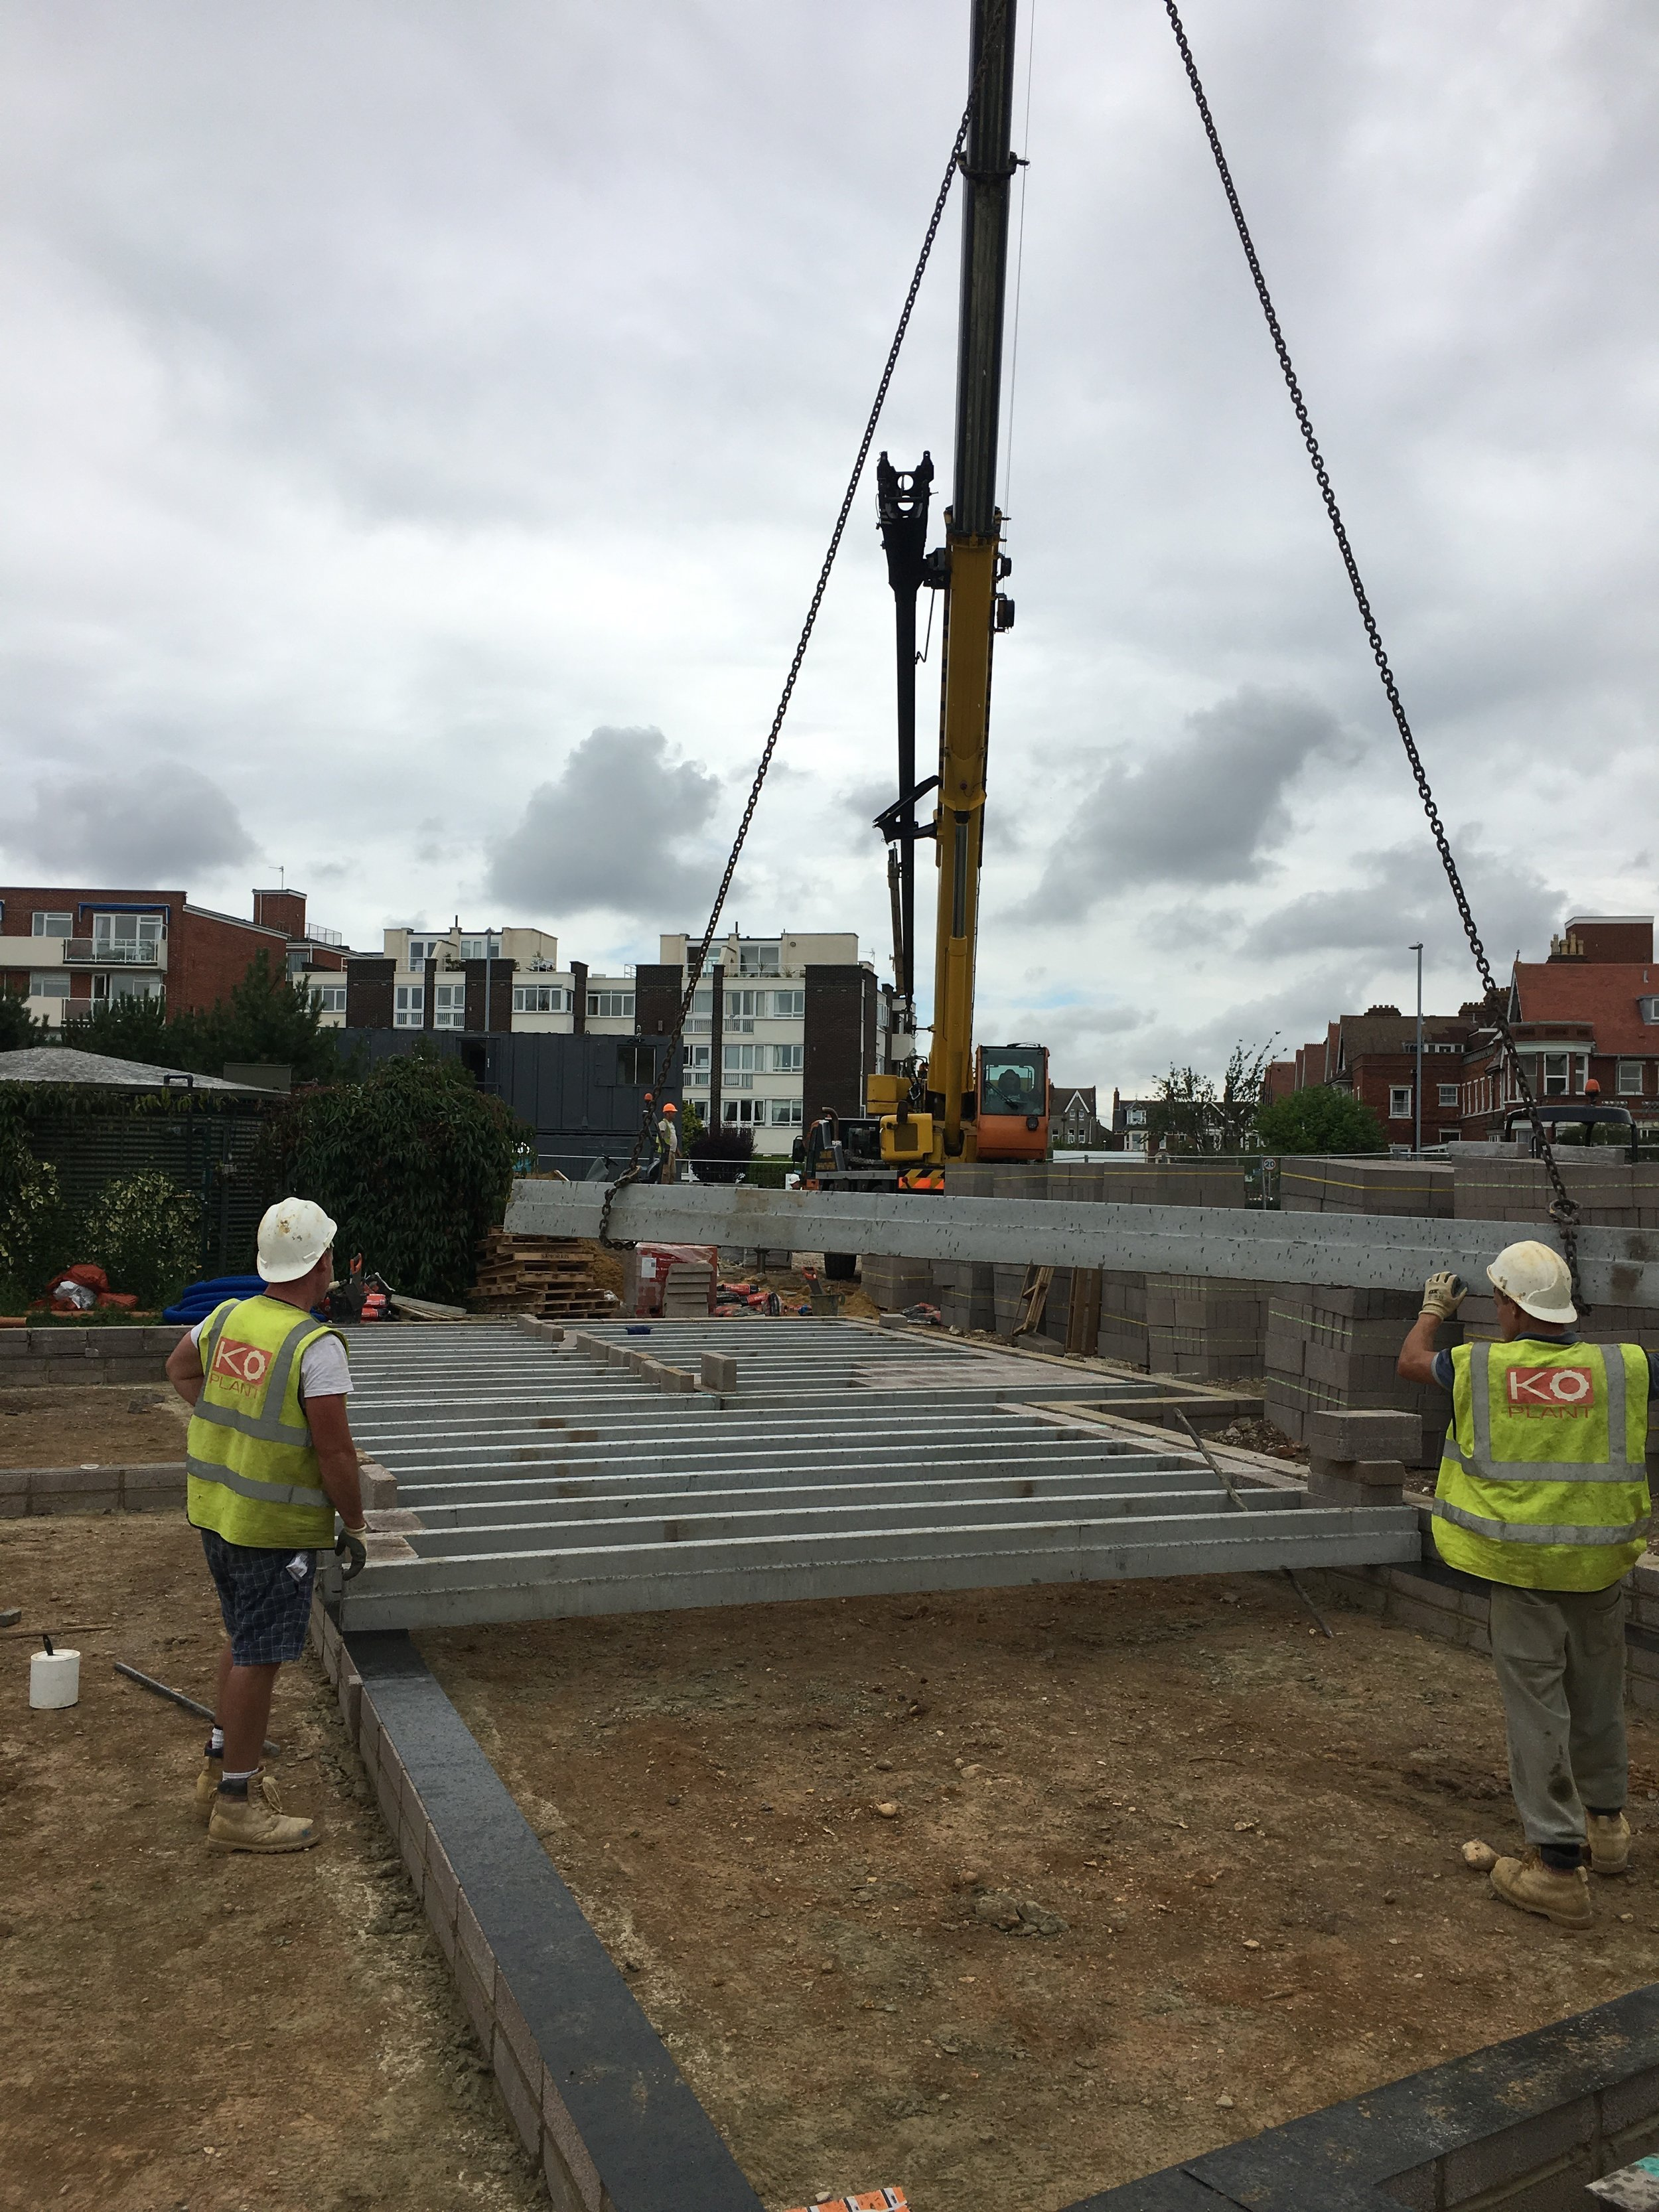 The concrete beam and block slab is lifted into place and assembled